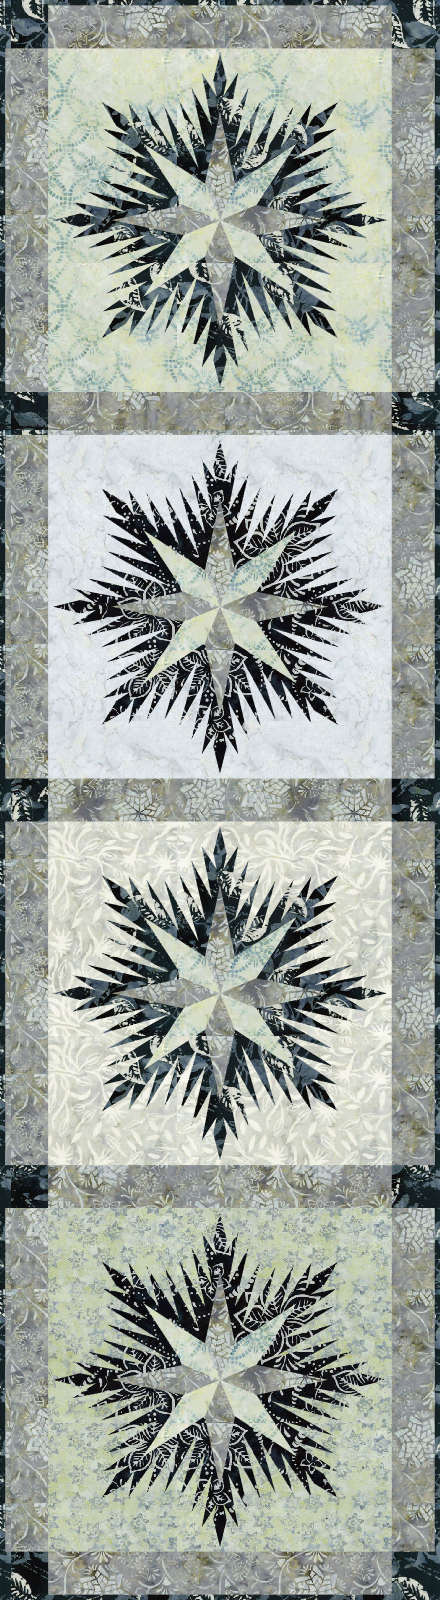 Winter Wonderland Table Runner • 17x49 $95.00 Fabric Only Sale: $101.50 Kit with Pattern